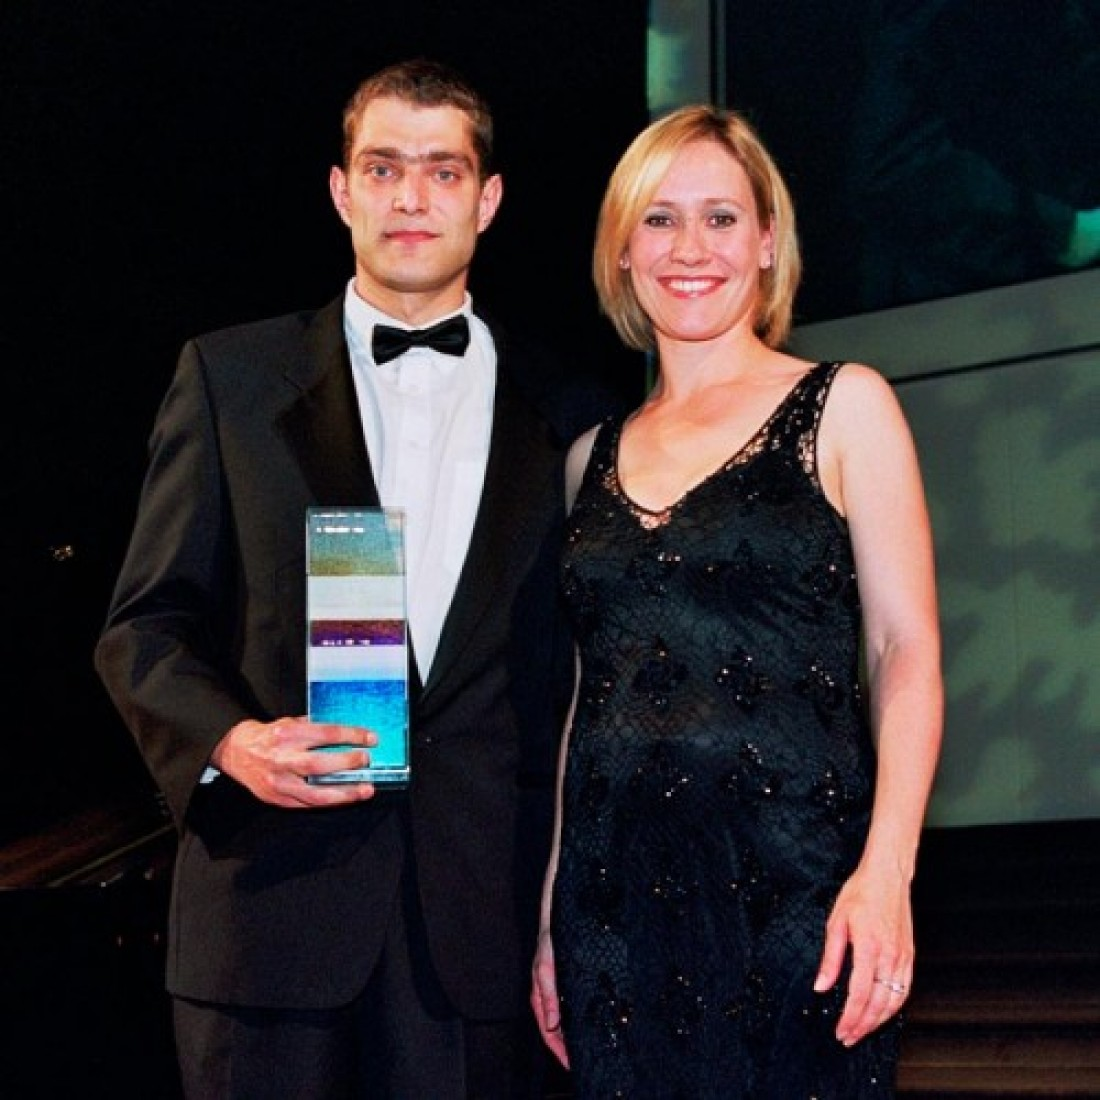 Marble Heating wins the Product of the Year award